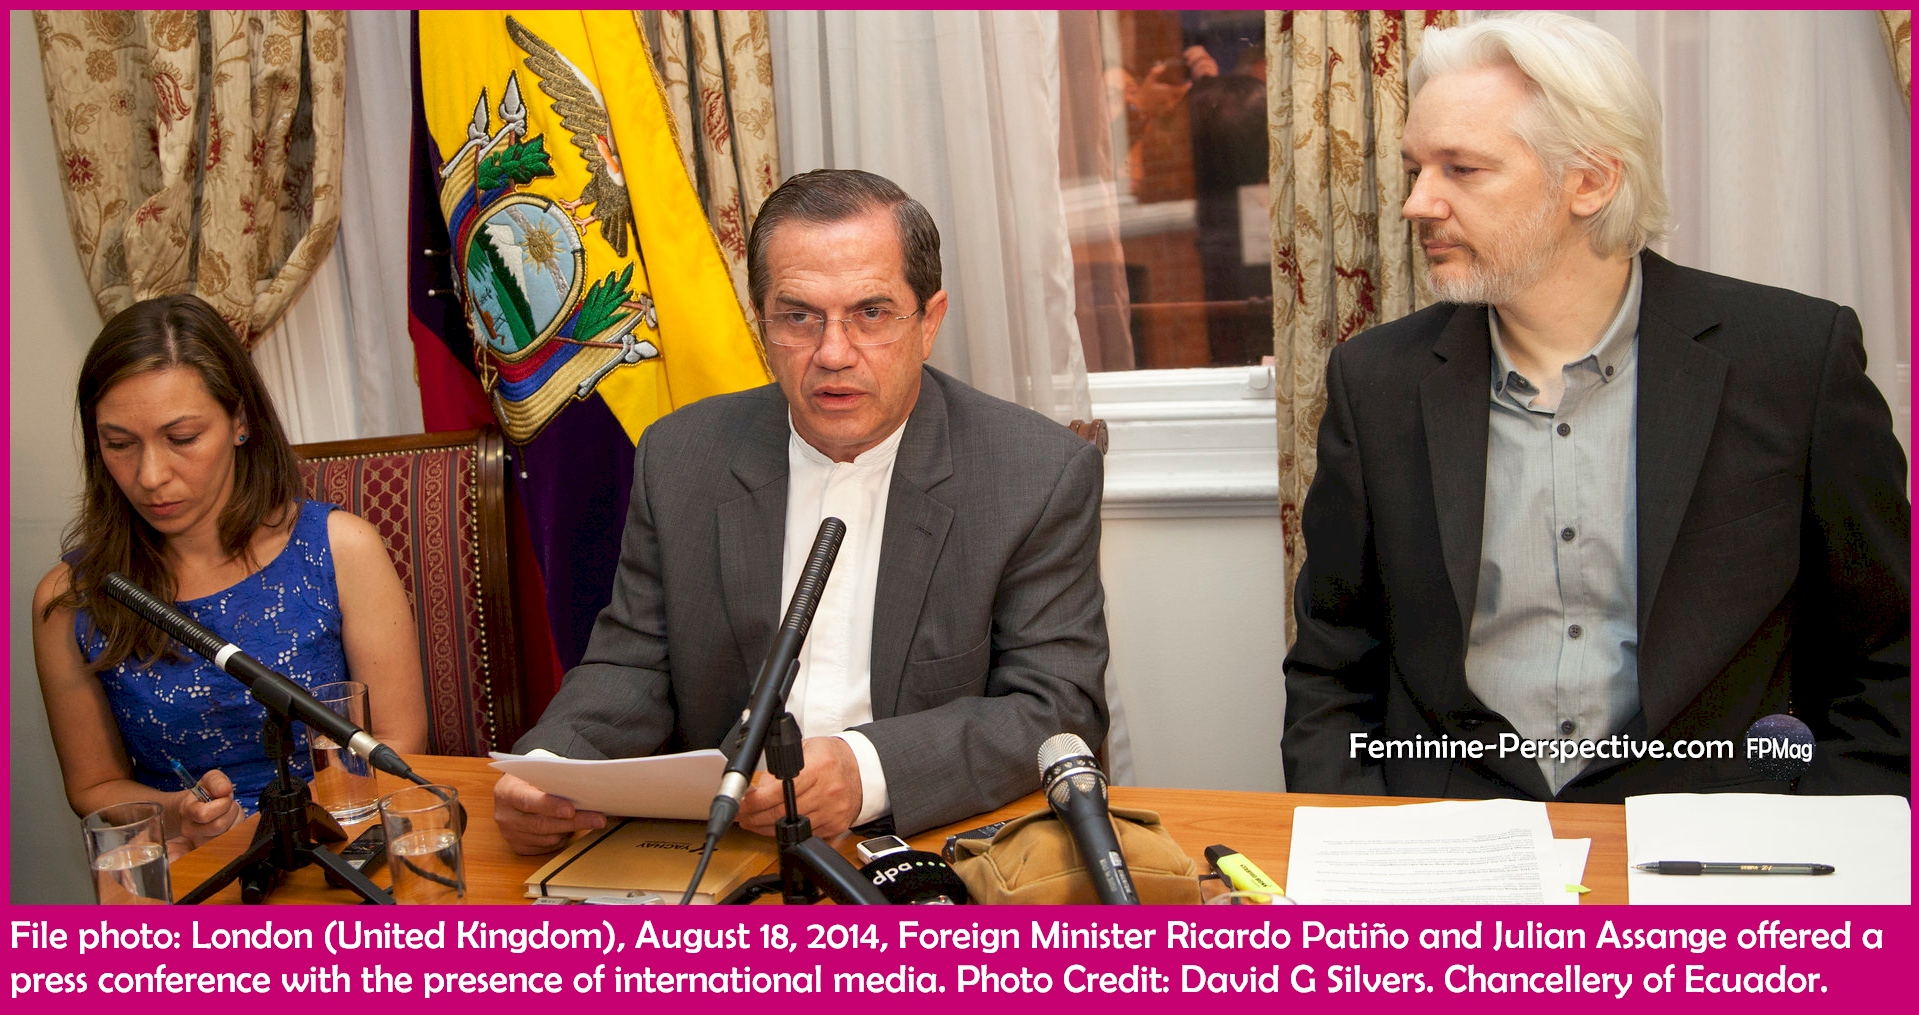 File photo: London (United Kingdom), August 18, 2014, Foreign Minister Ricardo Patiño and Julian Assange offered a press conference with the presence of international media. Photo Credit: David G Silvers. Chancellery of Ecuador.